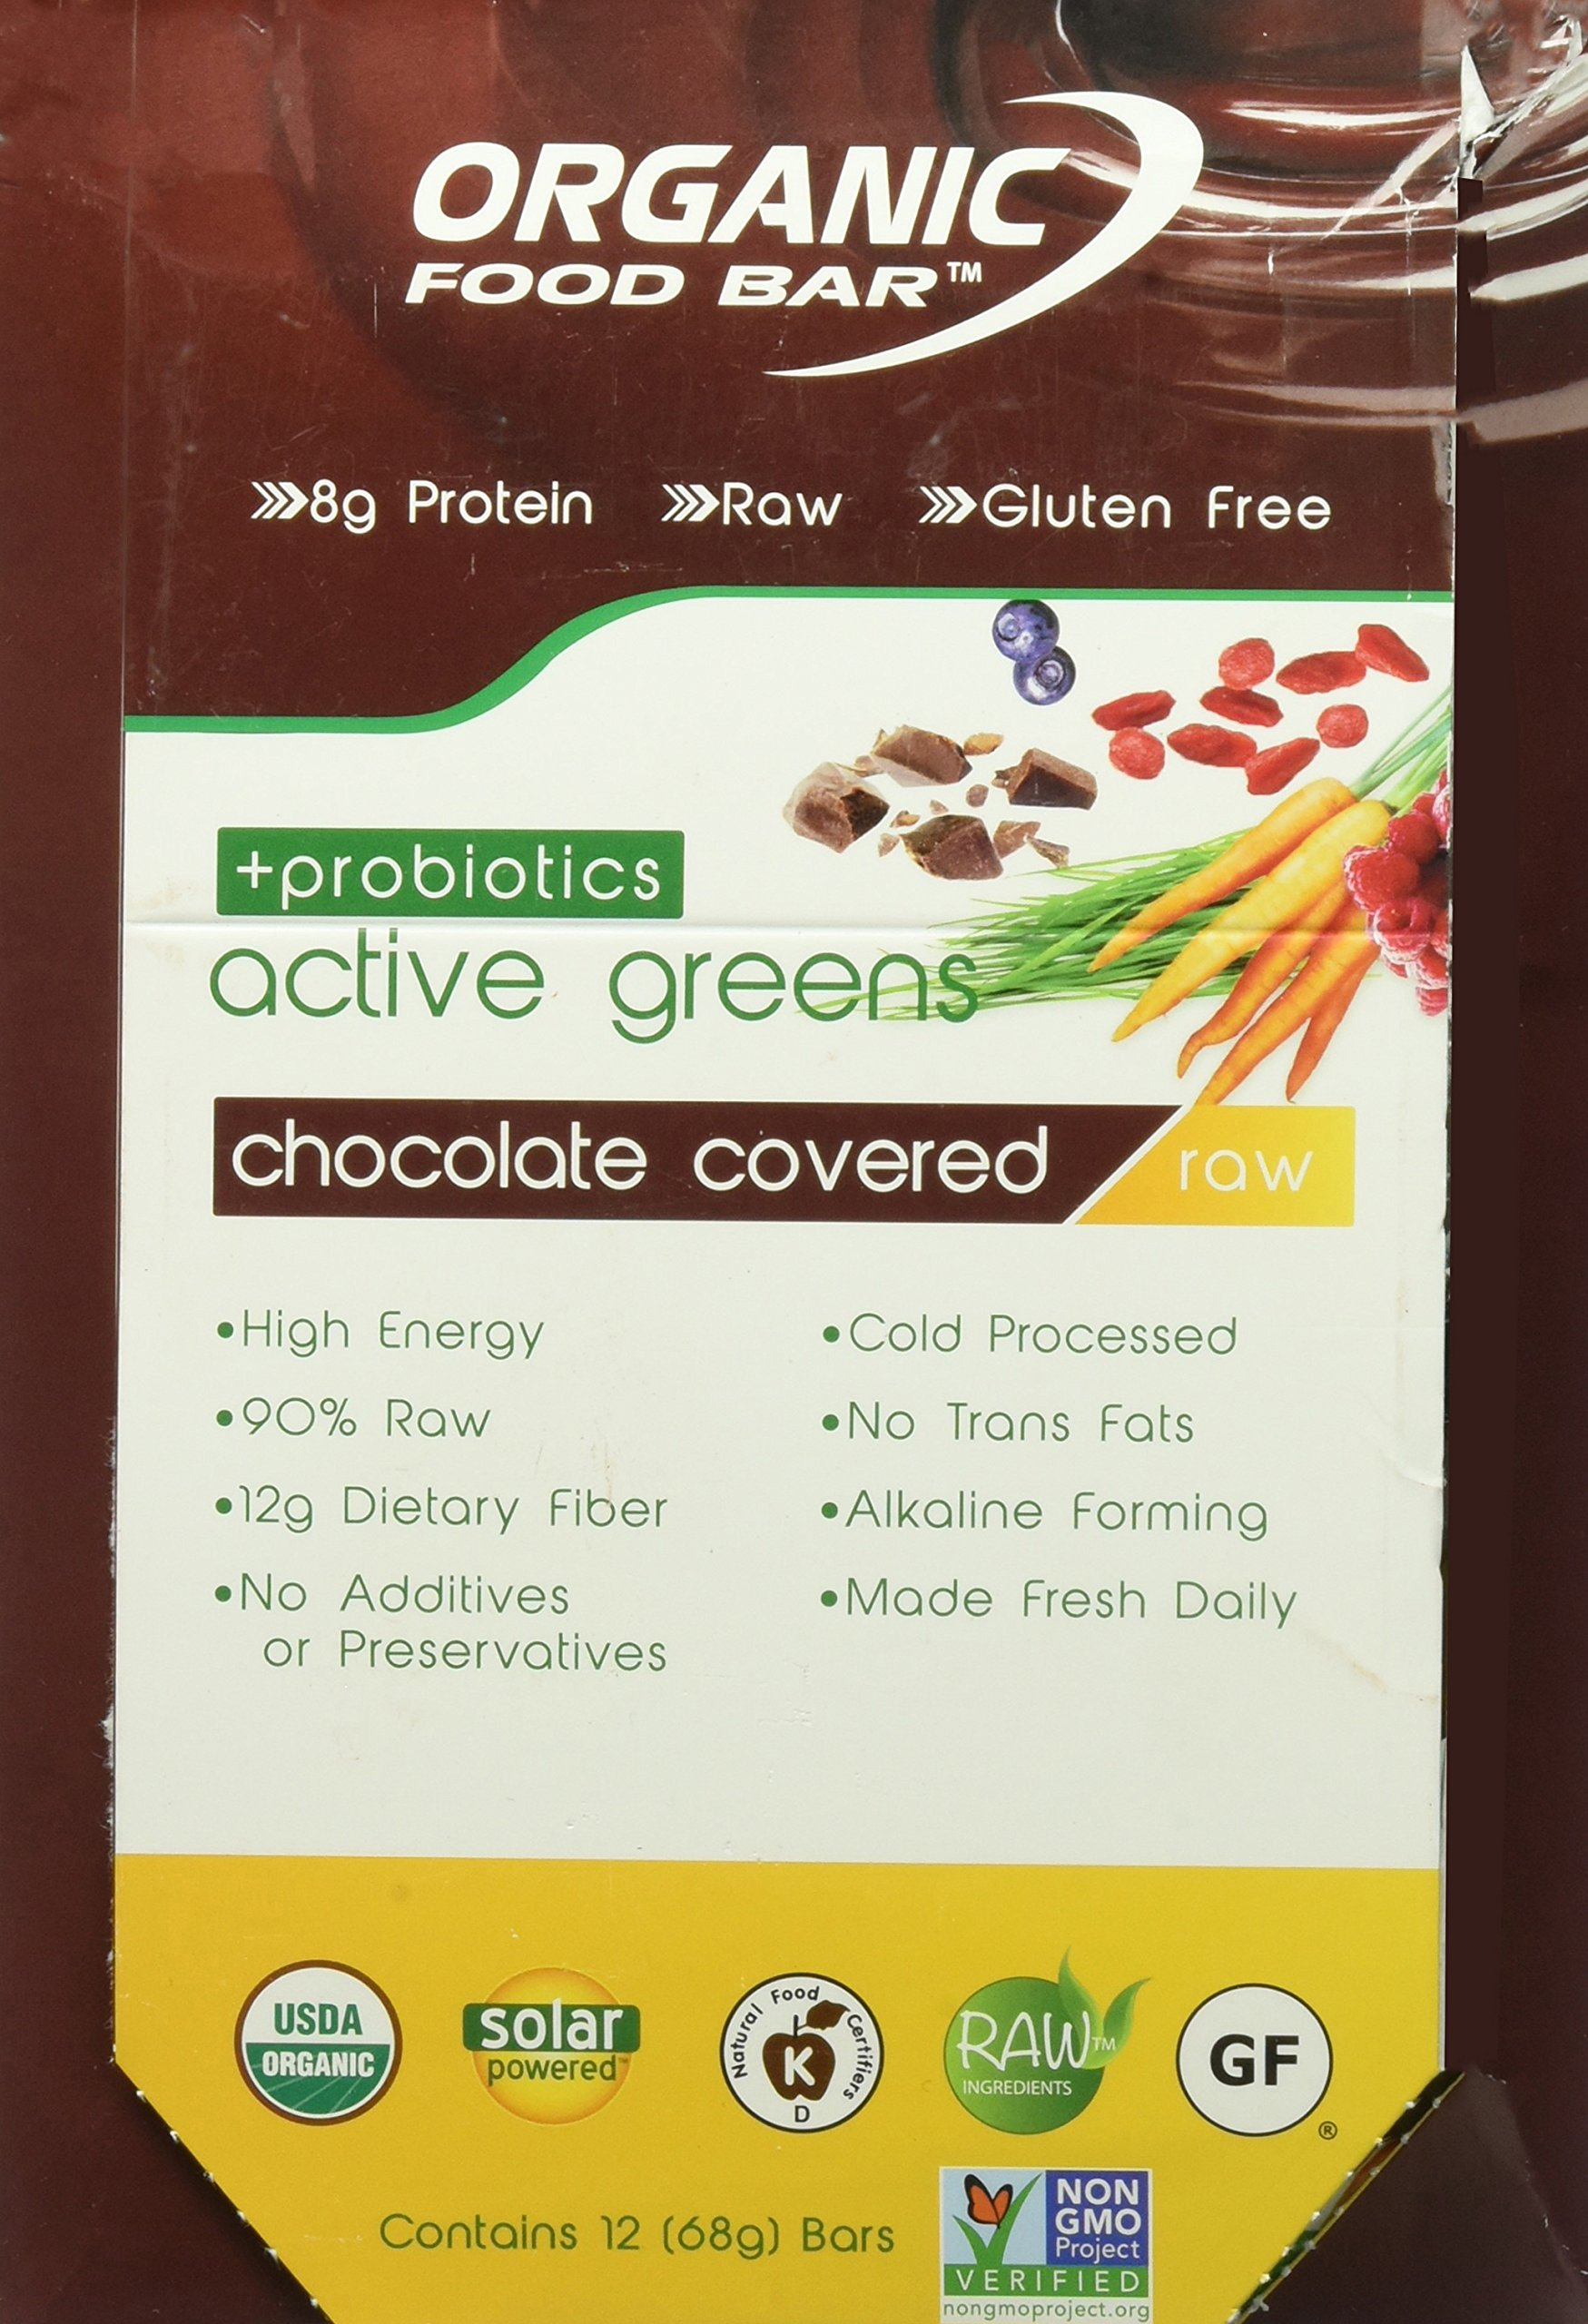 Organic Food Bar - Active Greens Probiotic Chocolate Covered Bars, USDA Organic Active Greens Bar with Superfood Blend with Powerful Antioxidants (Pack of 12) by Organic Food Bar